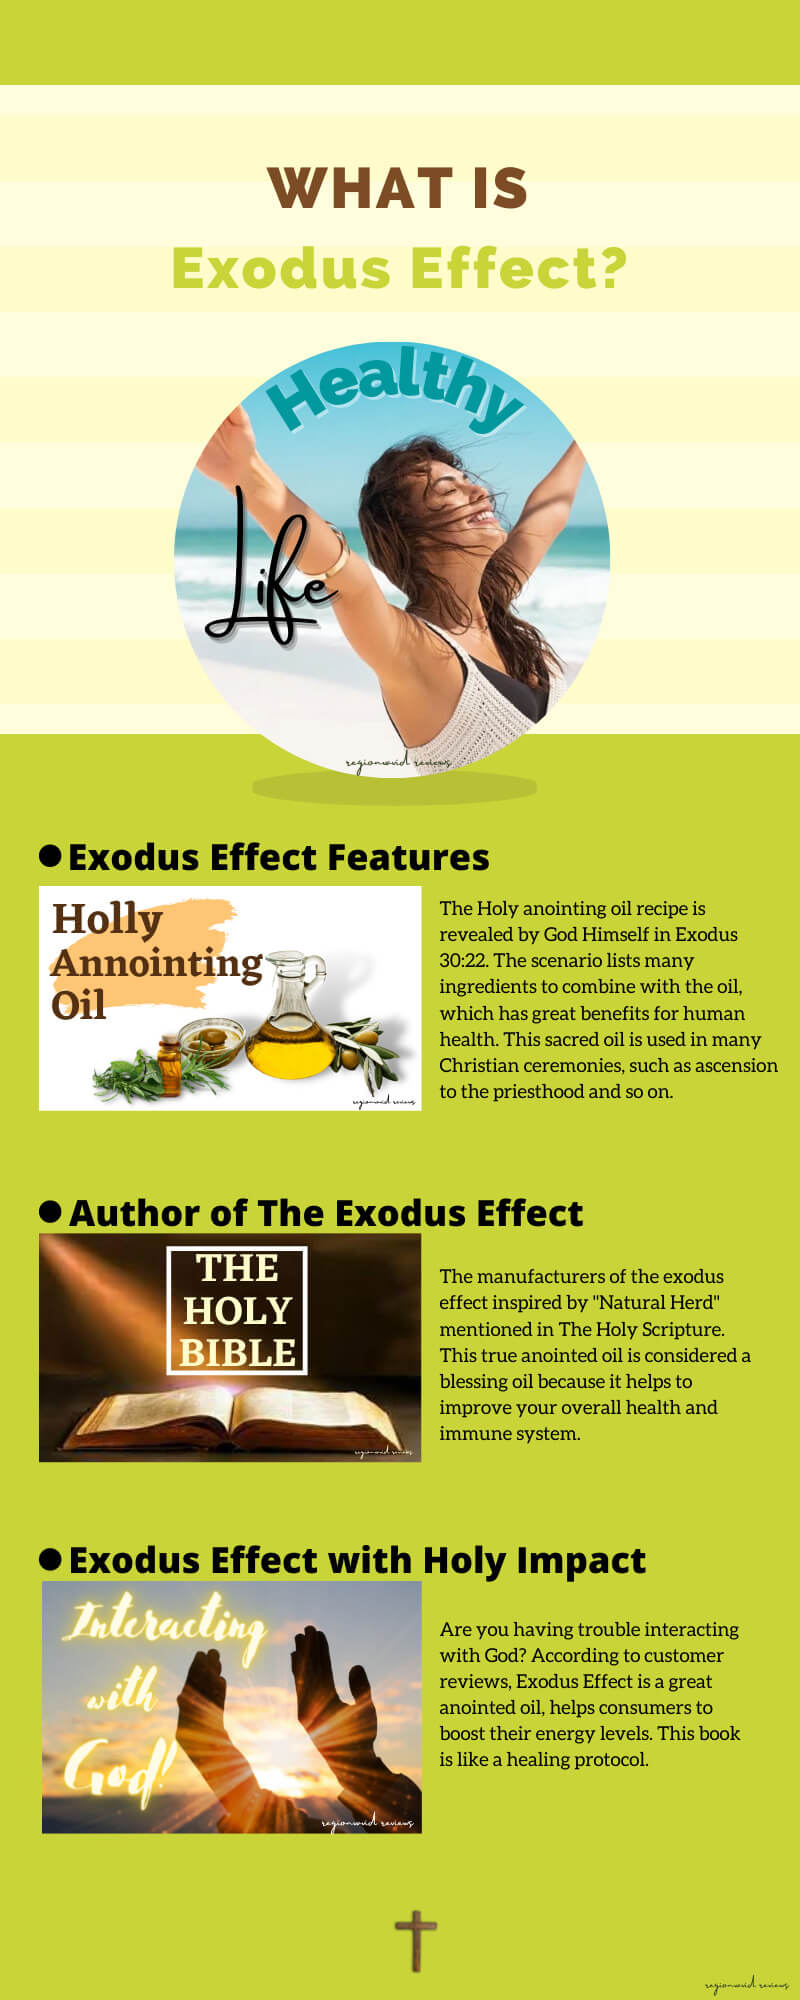 Exodus Effect To Feel The His Blessings